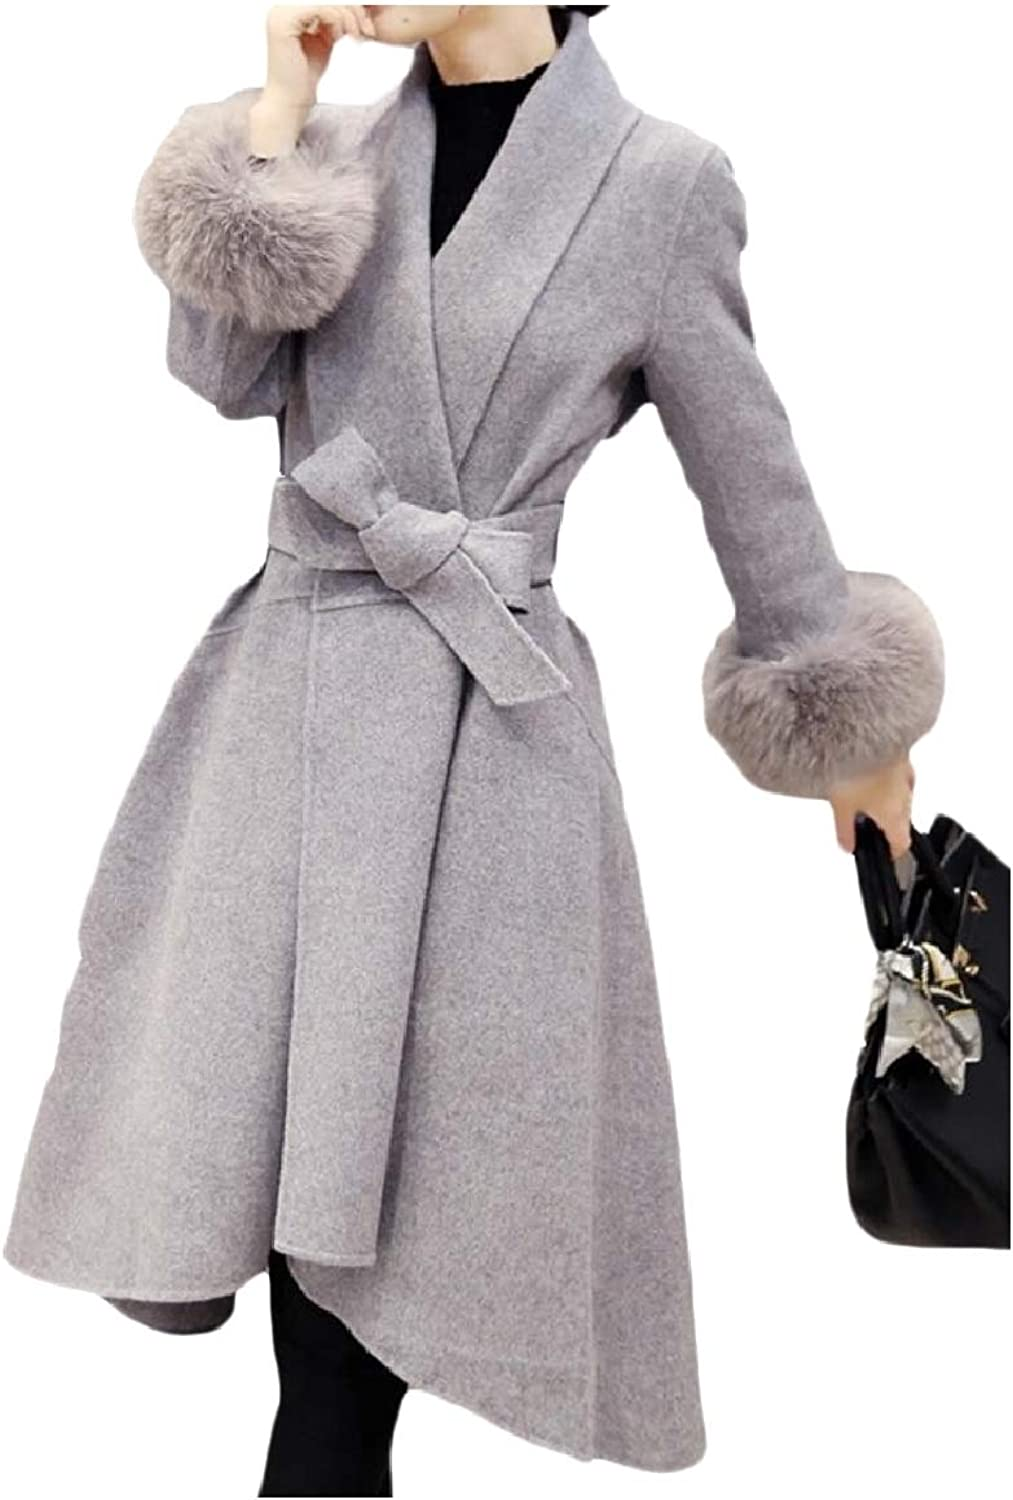 Baseby Women Fashion Belted Design Wool Blended Dress Long Trench Coat